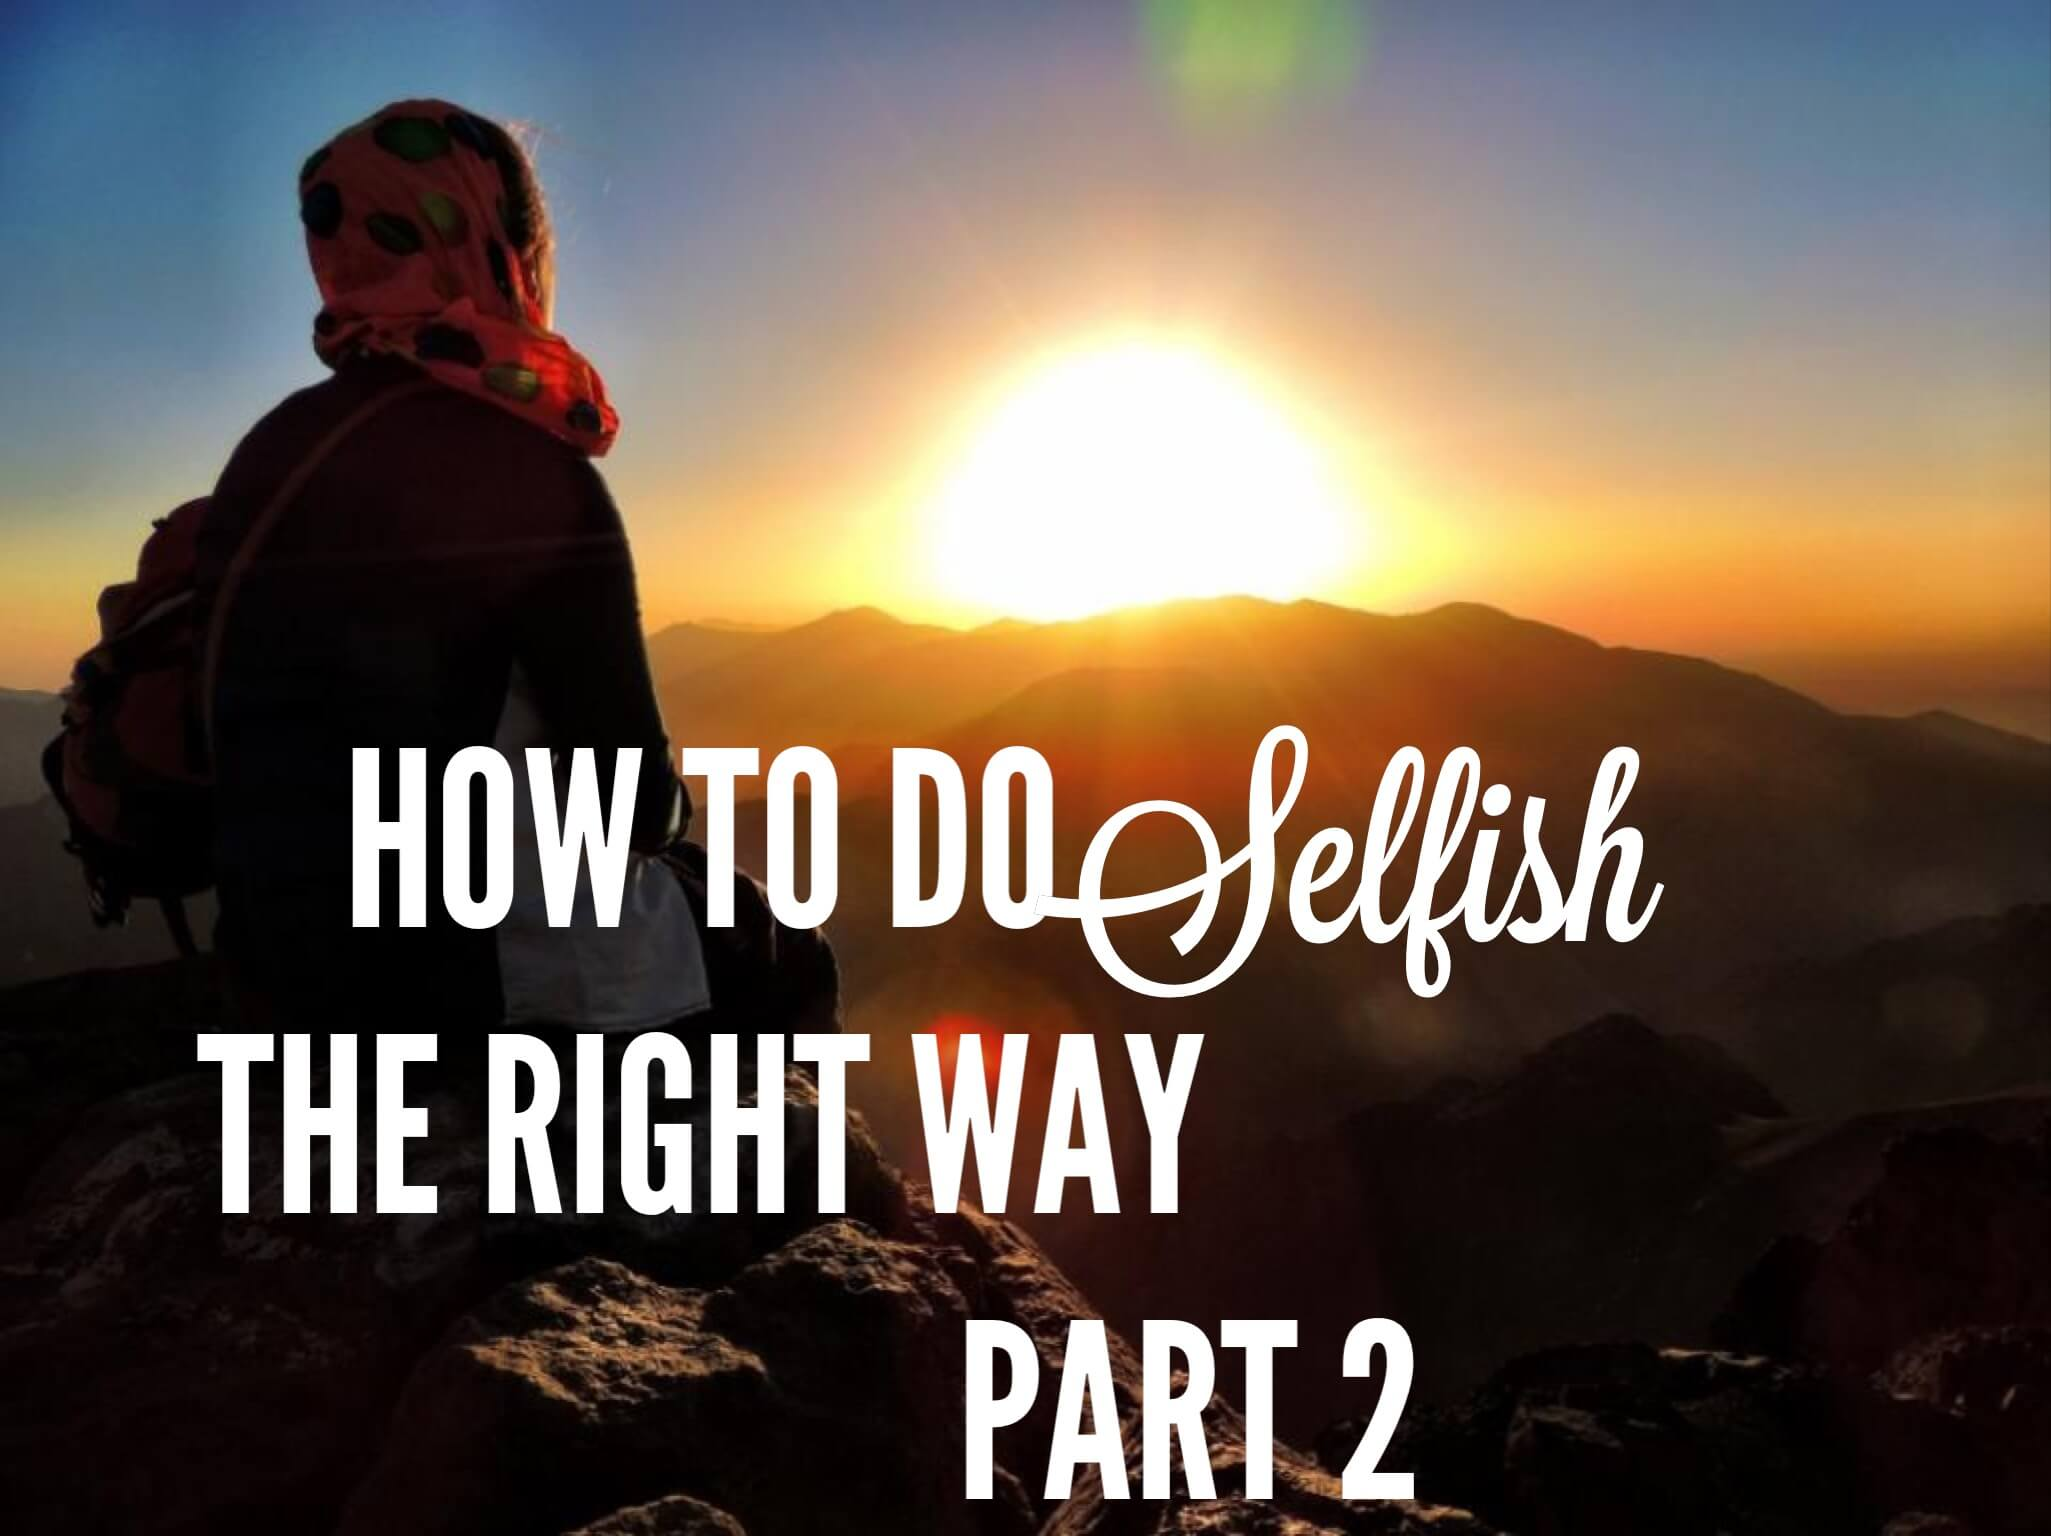 How-to-do-selfish-the-right-way-p21.jpg